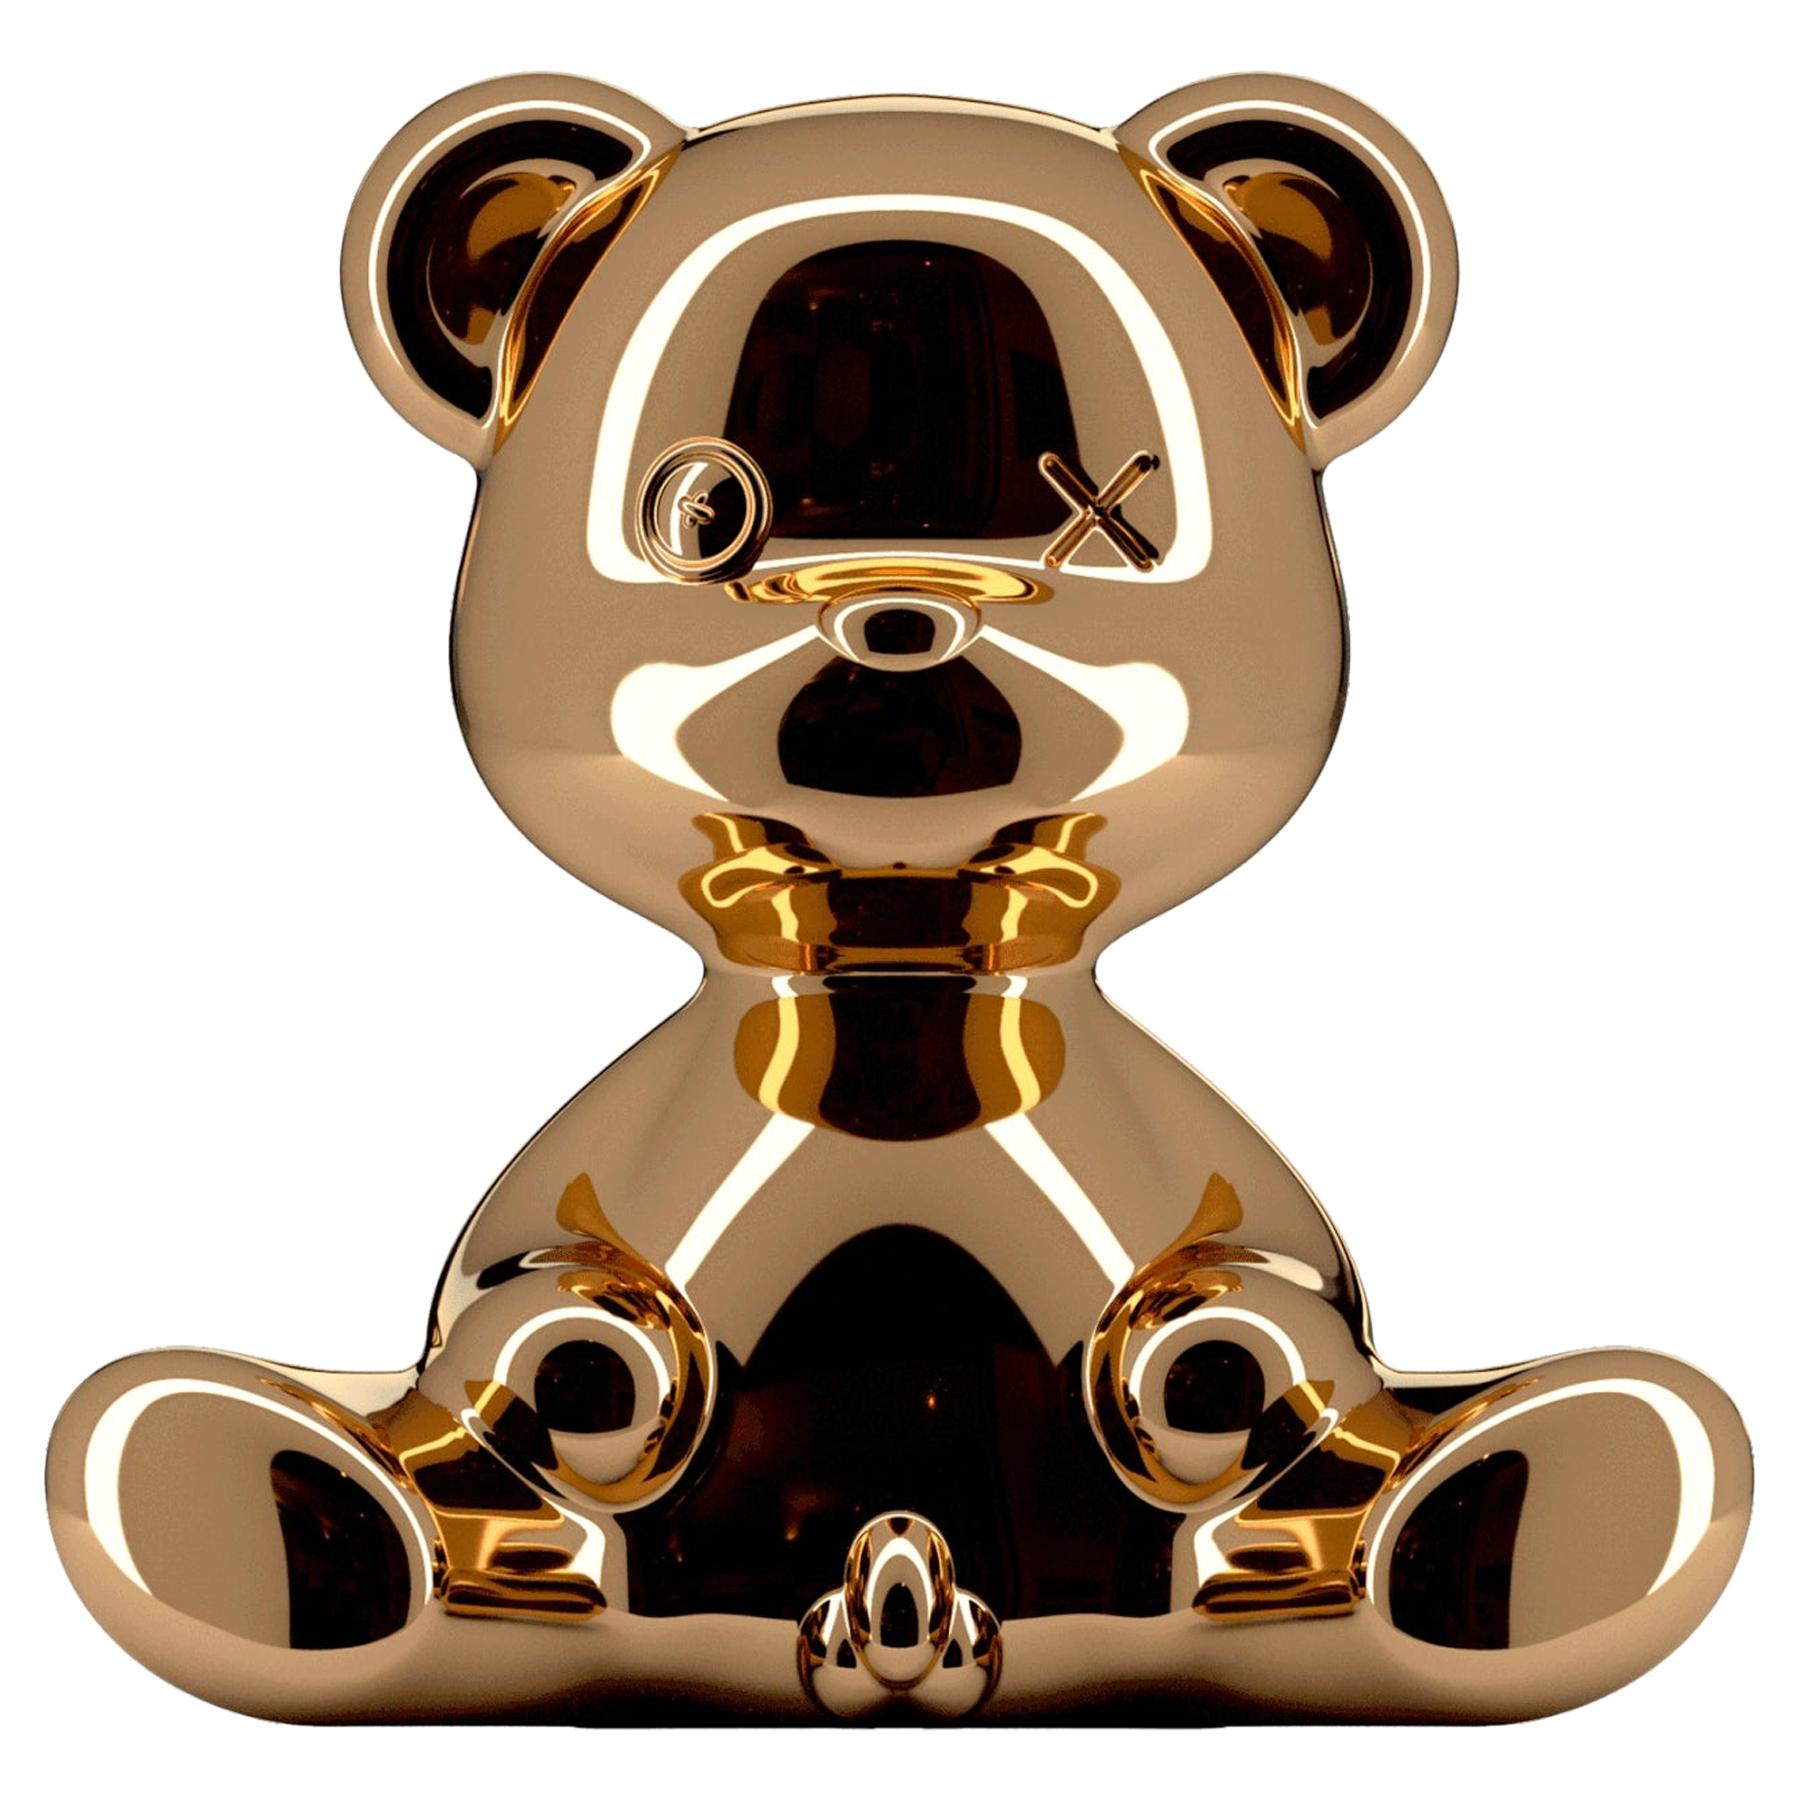 Copper Metallic Teddy Bear Lamp with LED, Made in Italy